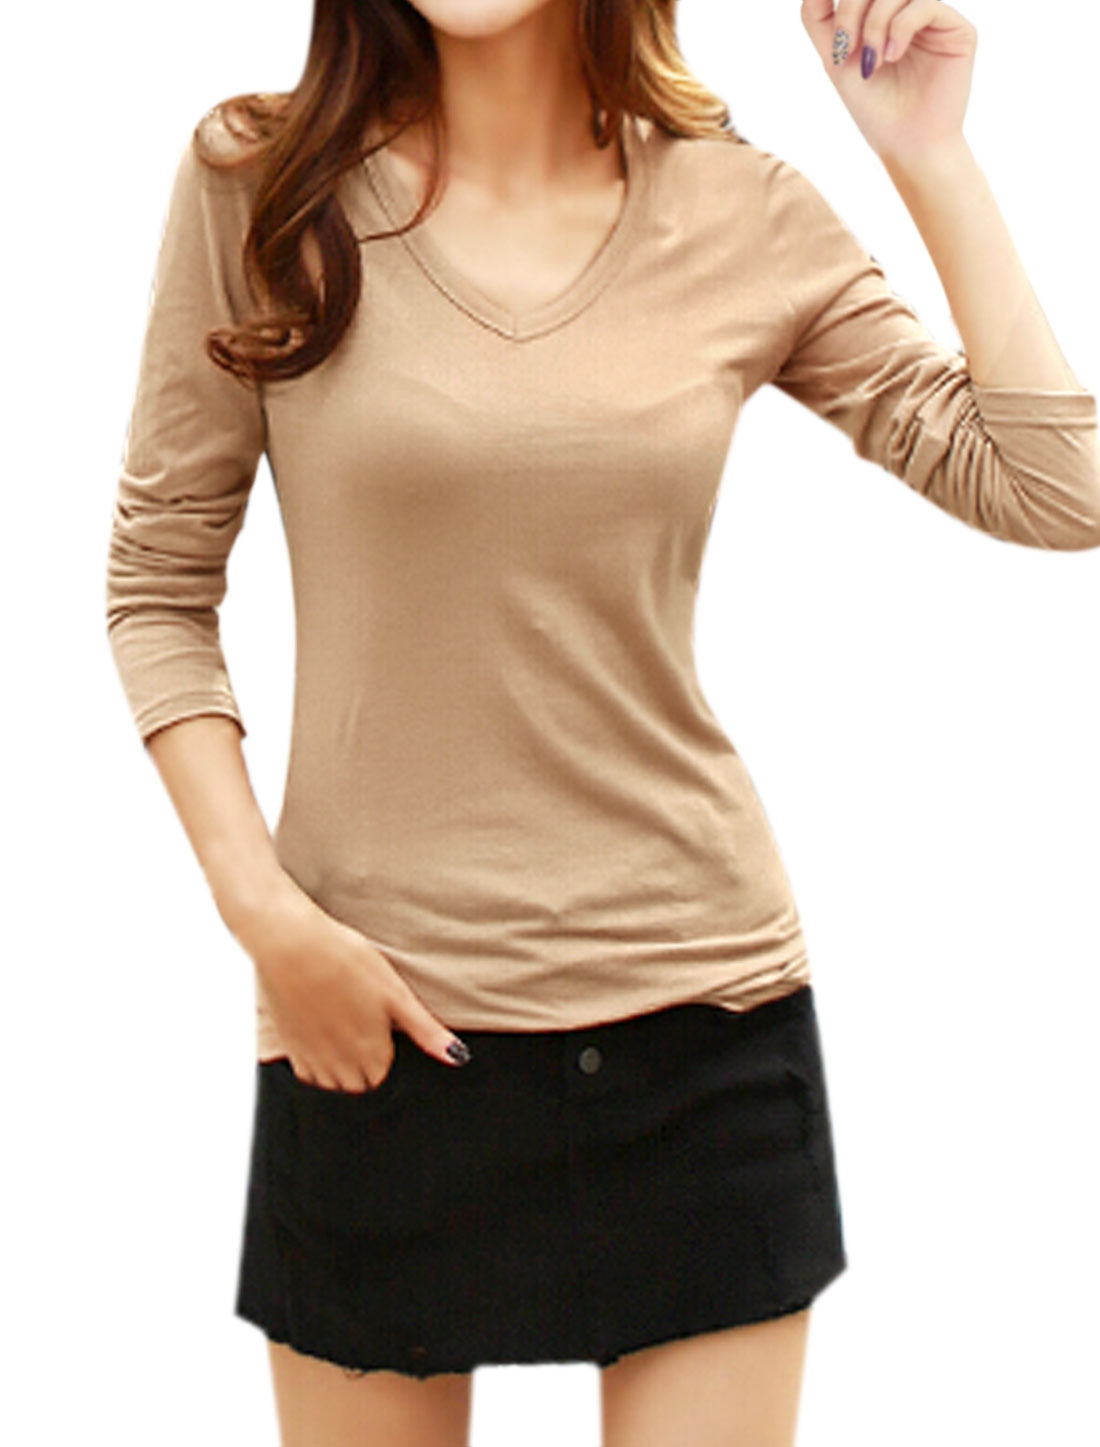 Ladies Long Sleeves V Neckline Slim Fit Tee Shirt Beige S